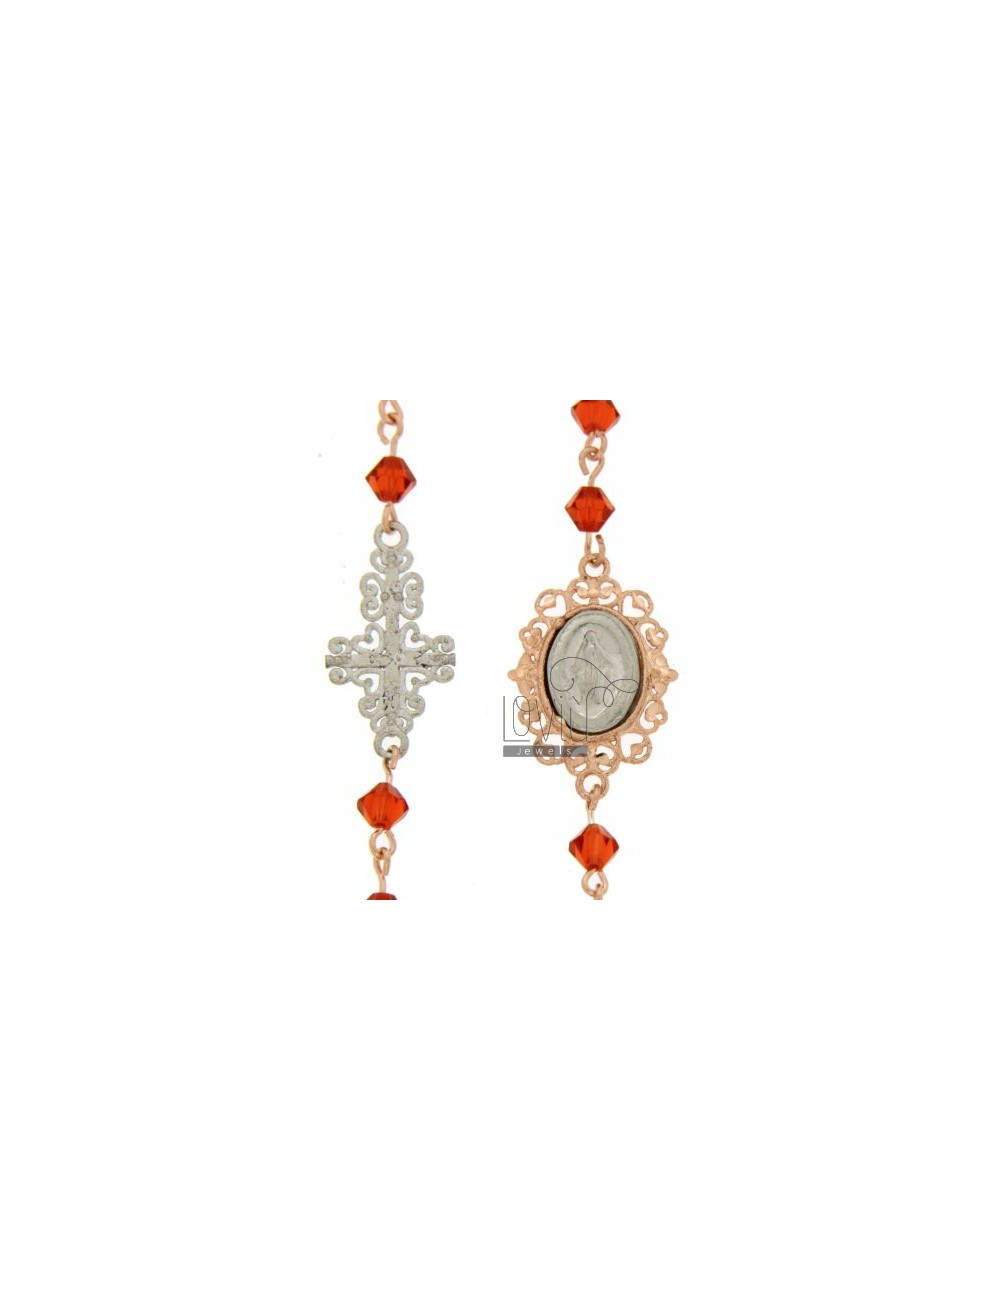 CORONA CRYSTAL BRACELET ORANGE PYRAMID 4 MM WITH MADONNA AND PERFORATED CROSS IN SILVER ROSE GOLD AND RHODIUM PLATED FROM 18 TO